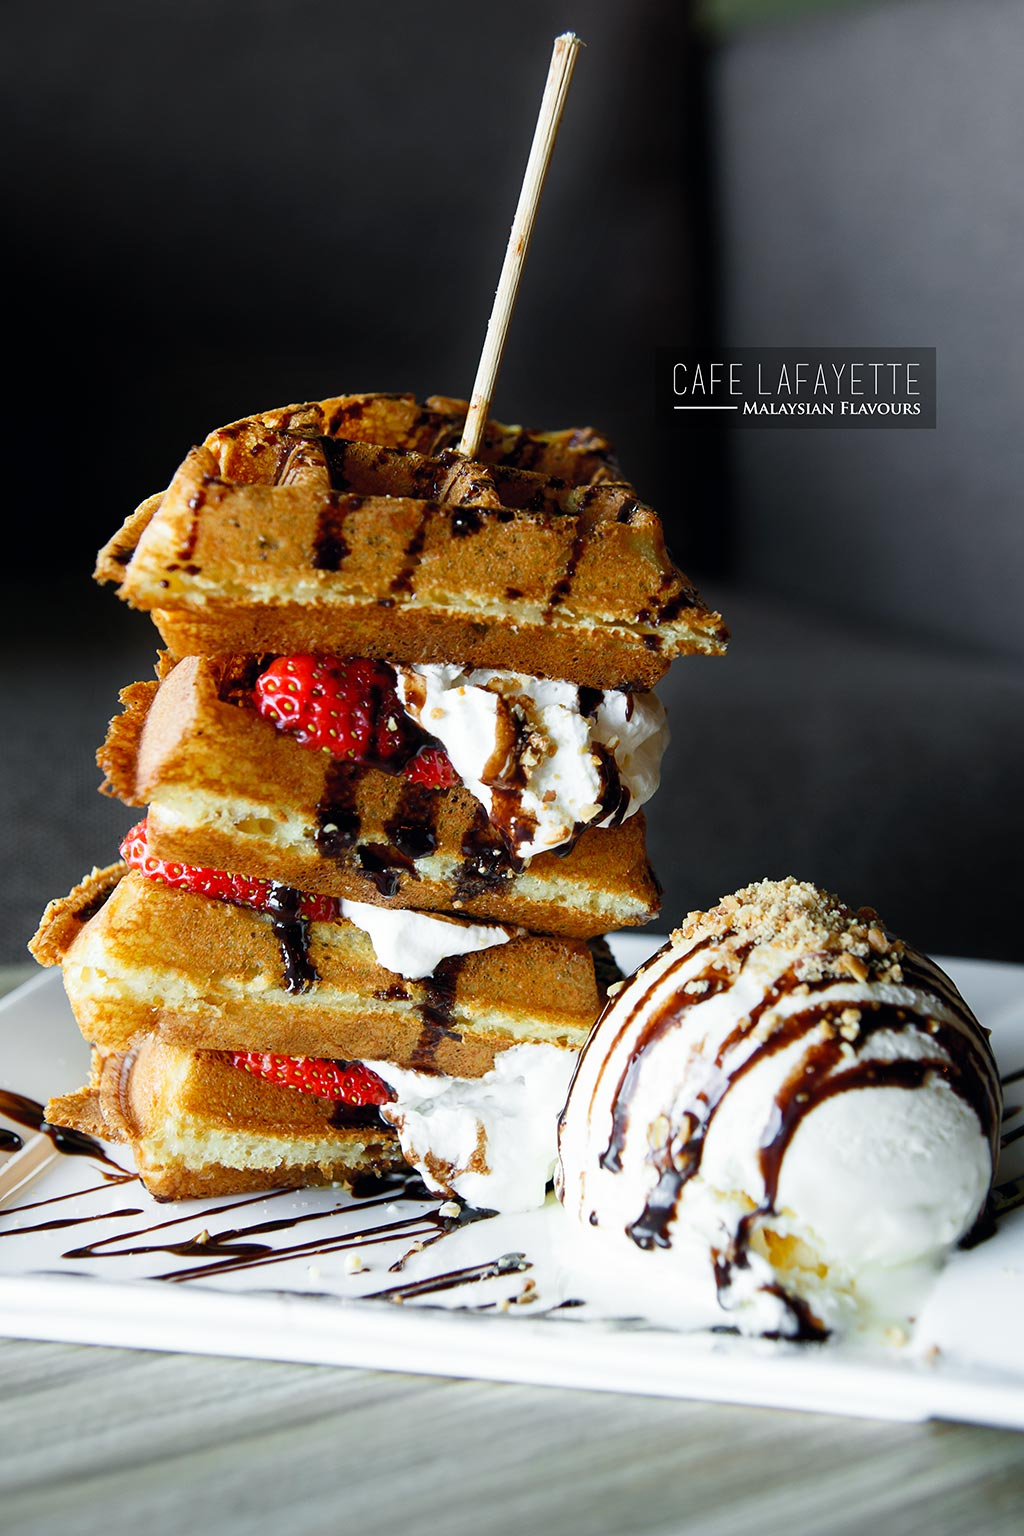 Cafe Lafayette Damansara Uptown strawberry stack